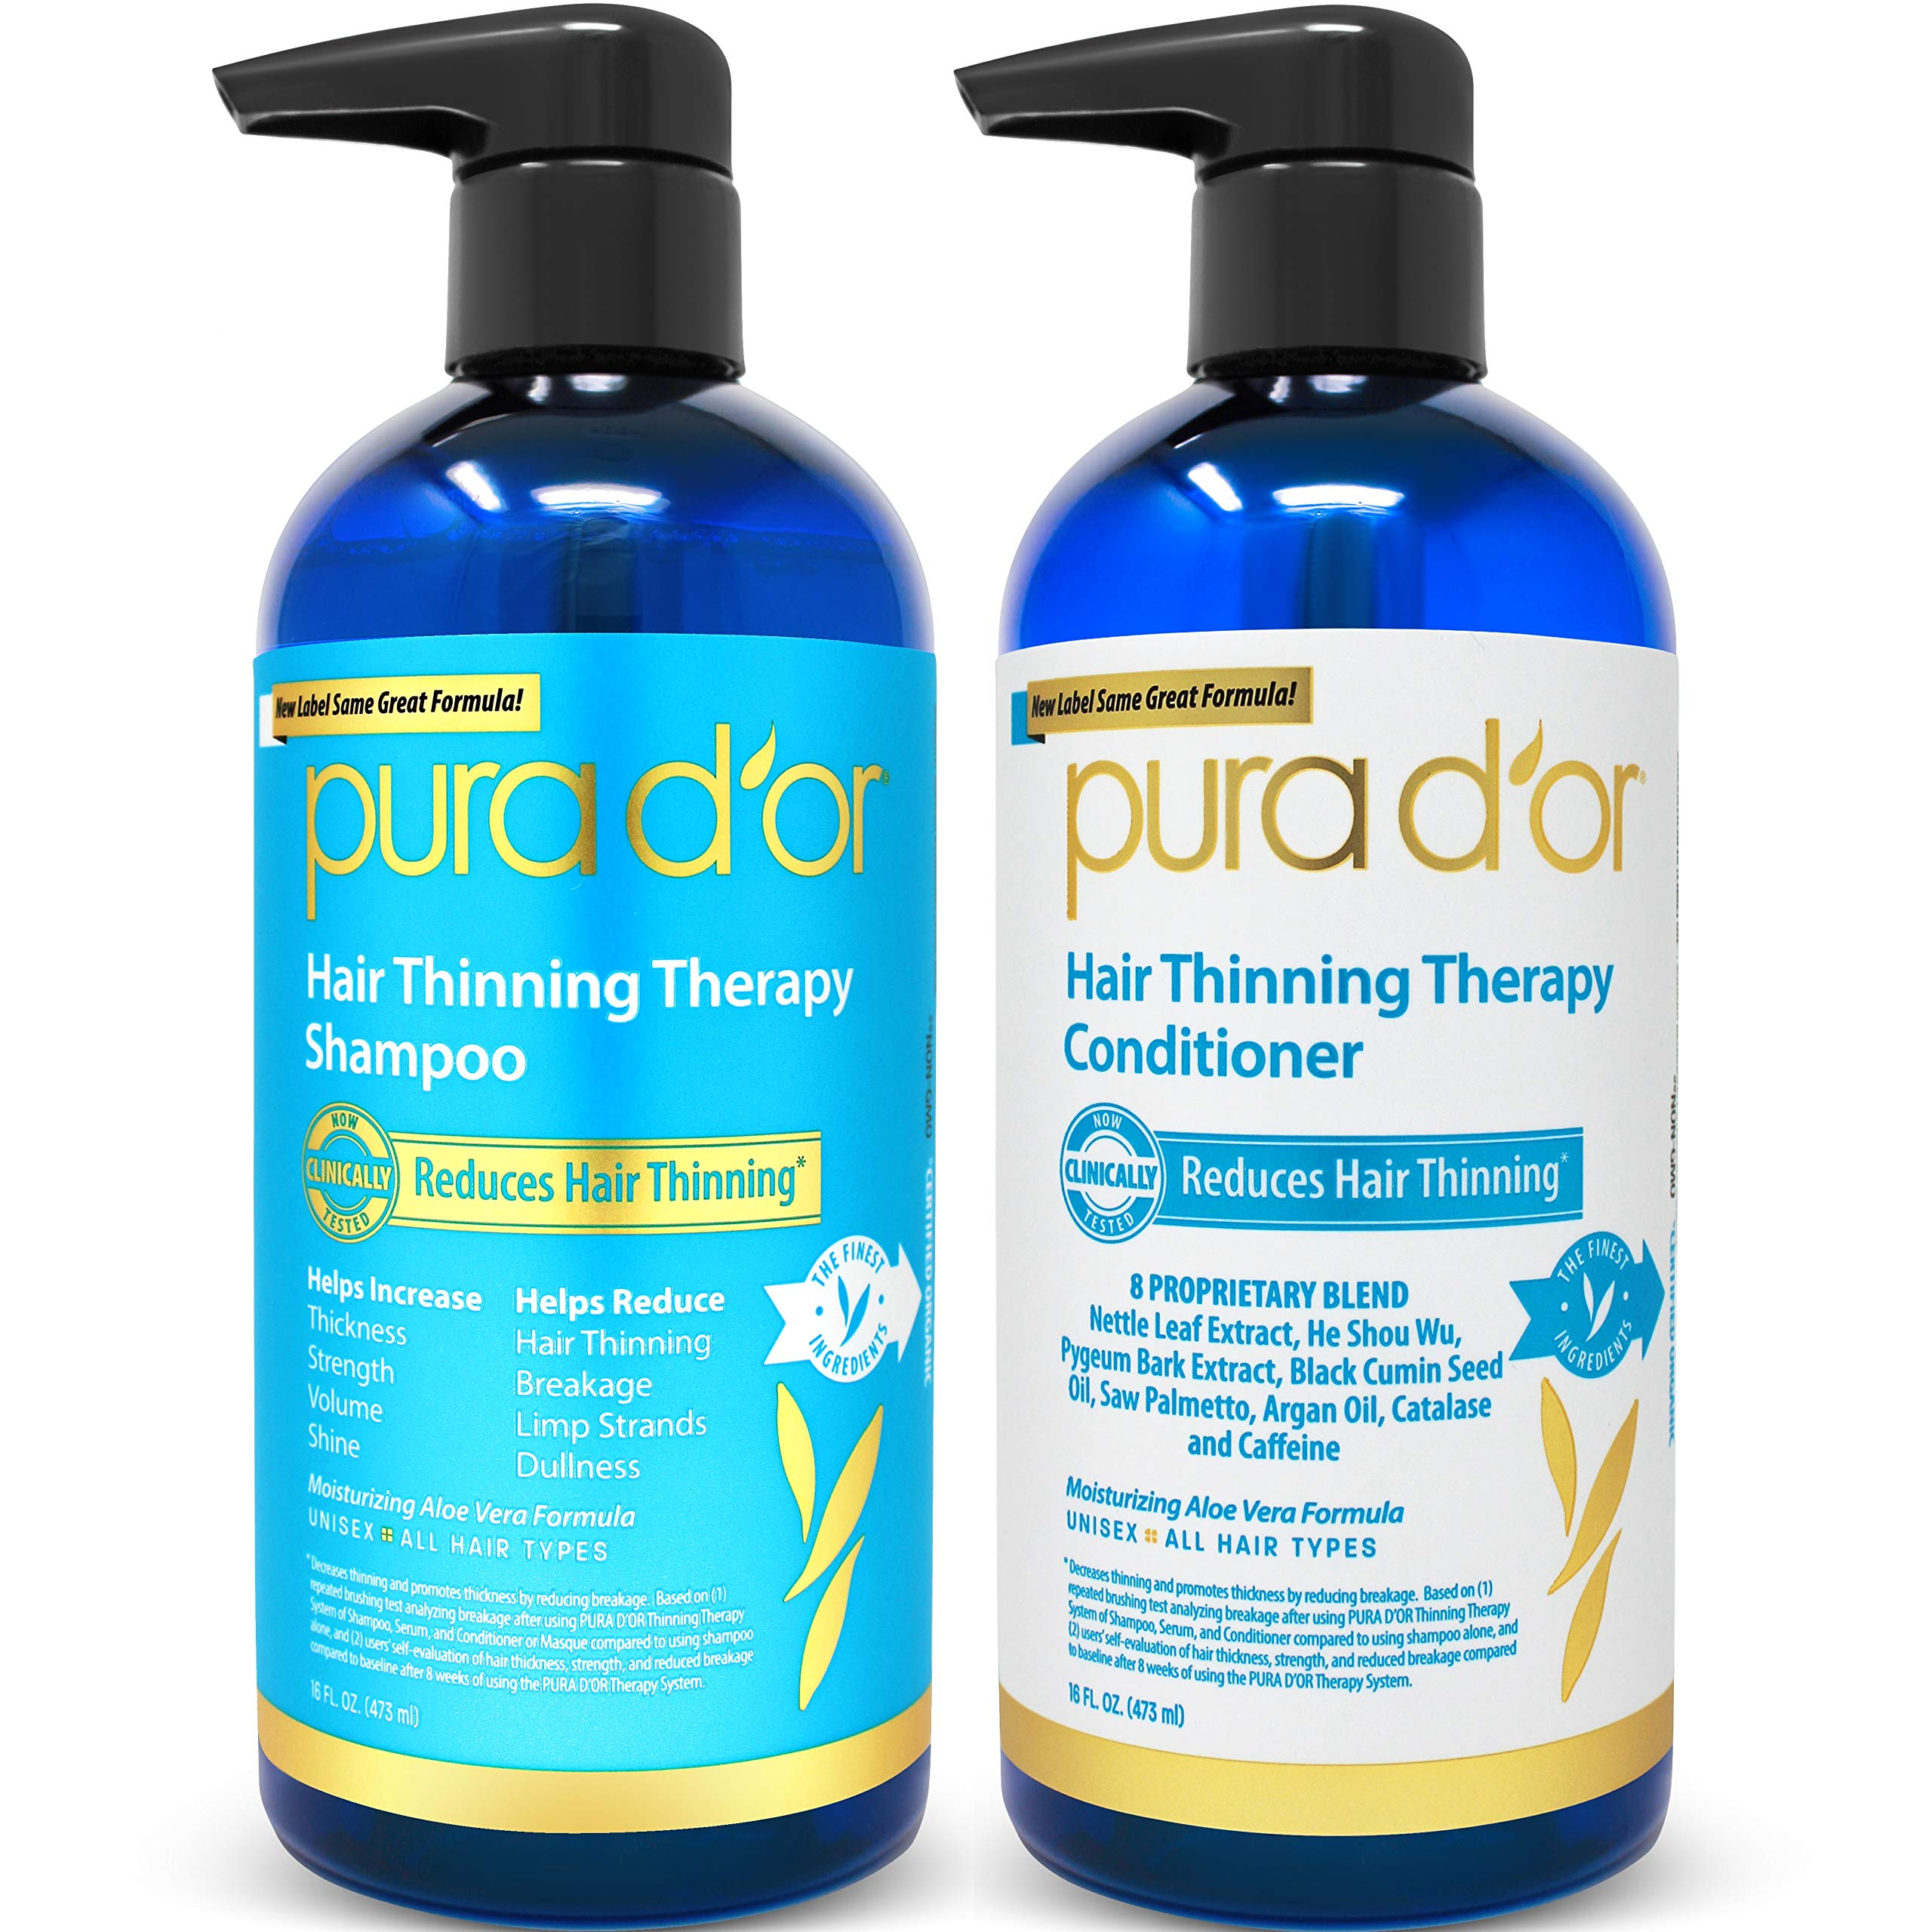 PURA D'OR Hair Thinning Therapy System - Biotin Shampoo & Conditioner Set for Hair Thinning Prevention With Natural Ingredients for All Hair Types, Men and Women (Packaging may vary) by PURA D'OR